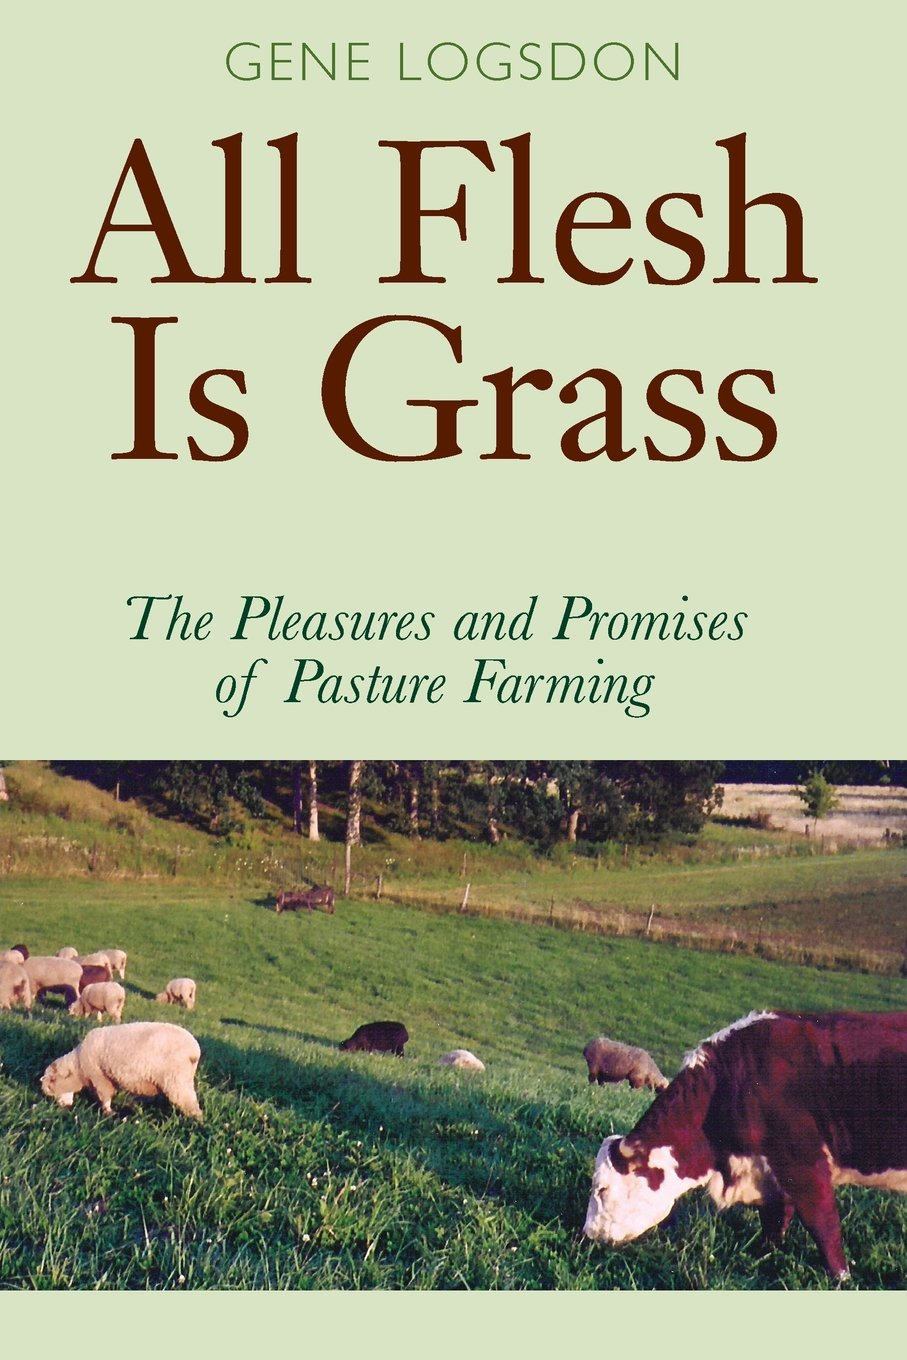 "all flesh is grass - By Gene LogsdonIn All Flesh Is Grass: The Pleasures and Promises of Pasture Farming, Gene Logsdon explains that well-managed pastures are nutritious and palatable—virtual salads for livestock. Leafy pastures also hold the soil, increase biodiversity, and create lovely landscapes. Grass farming may be the solution for a stressed agricultural system based on an industrial model and propped up by federal subsidies. The pasture farming that Gene Logsdon practices can also produce grains, fruits, herbs, mushrooms, and salad greens for human consumption.The book explains historically effective practices and new techniques that have blossomed in recent years for the care and sustenance of horses, cattle, sheep, hogs, and poultry on pasture. Logsdon's warm profiles of successful grass farmers offer inspiration and ideas. His narrative is enriched by his experience as a ""contrary farmer"" on his own artisan-scale farm.The culmination of a lifetime's experience, this book is vital for owners of small acreages, home food producers, horse enthusiasts, and sustainable commercial farmers."